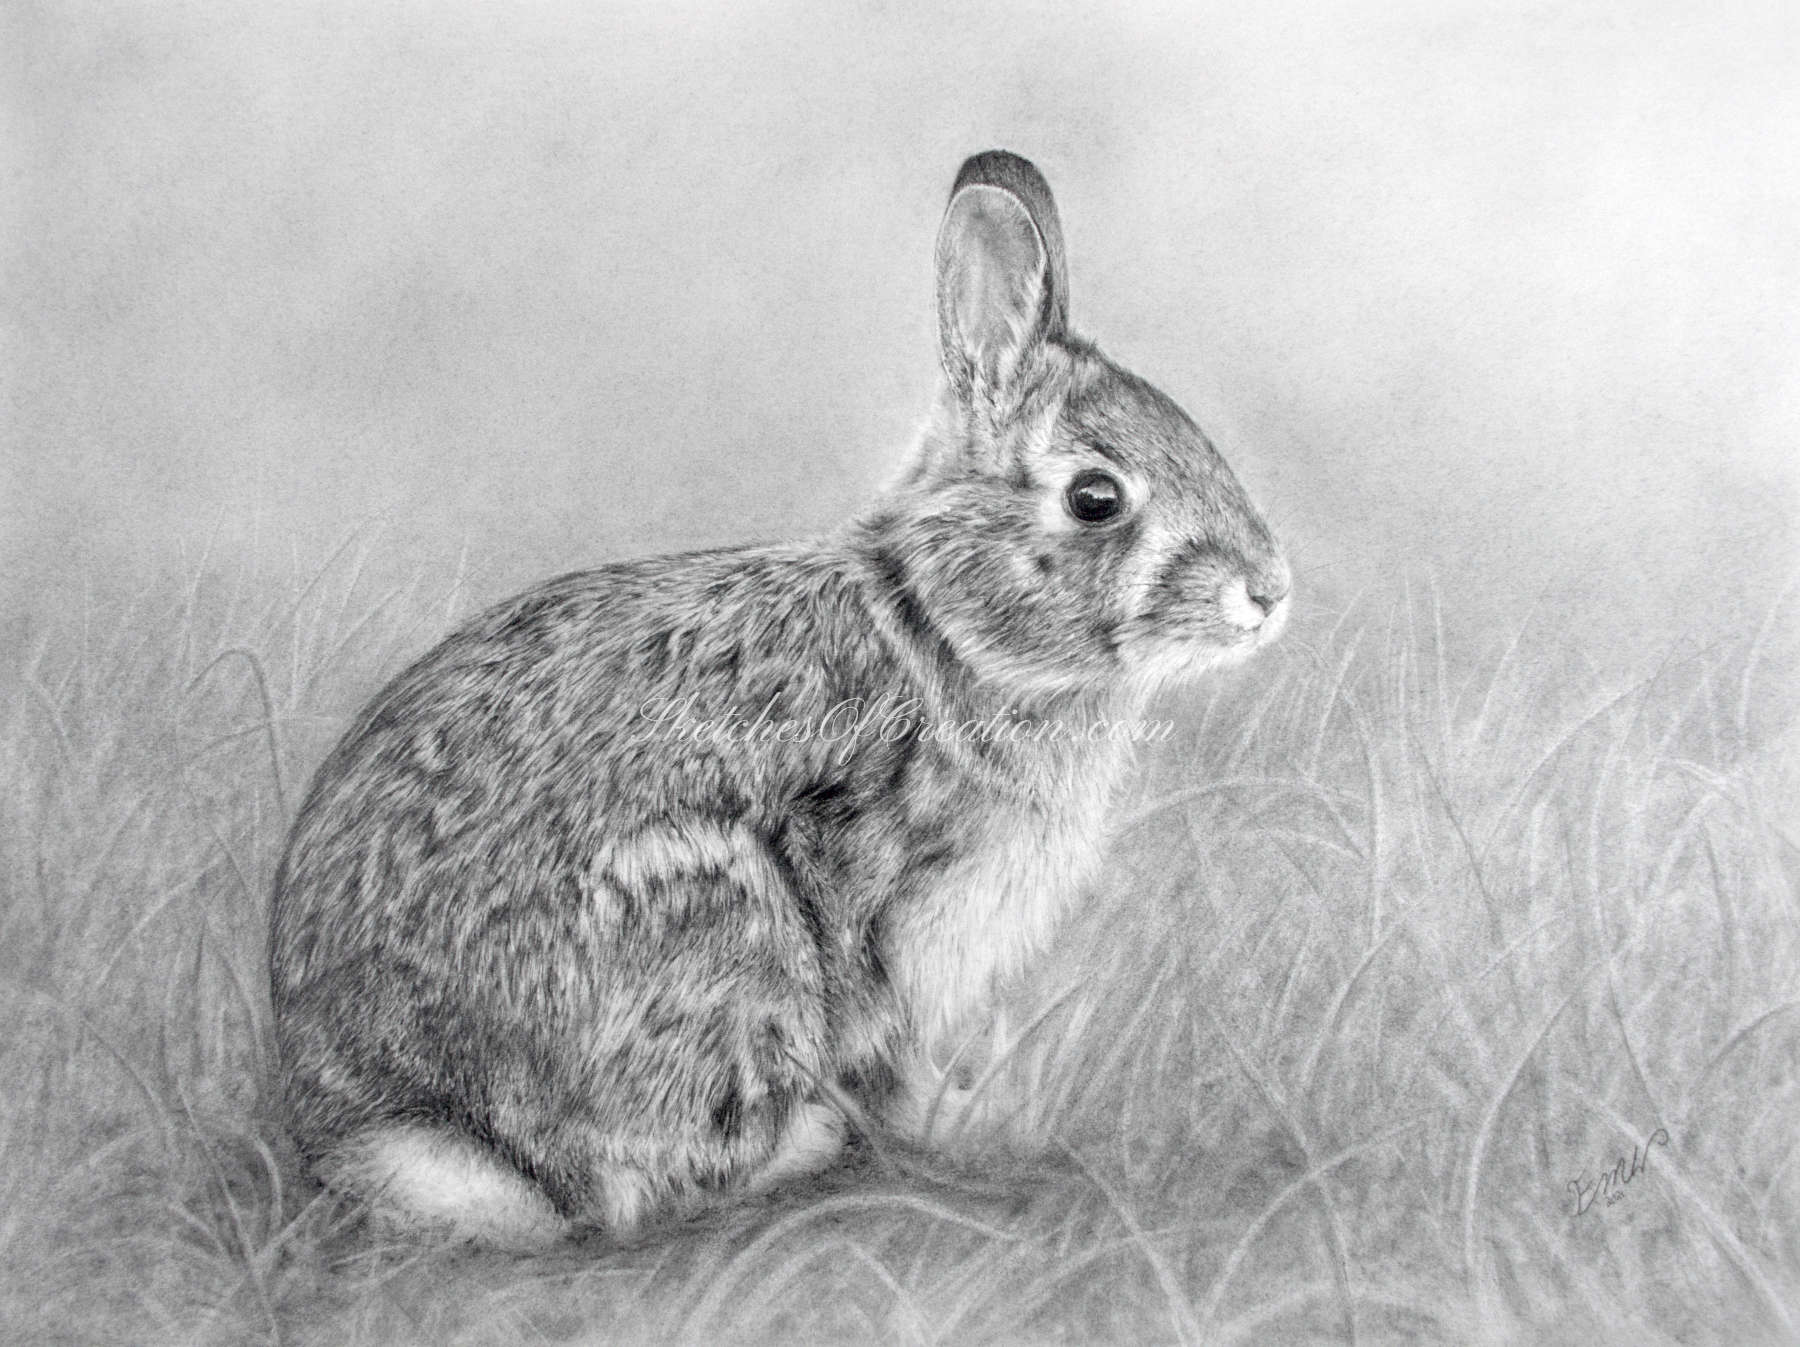 'Rabbit' a drawing of a Rabbit. approximately 9x12 inches. Completed April 2021